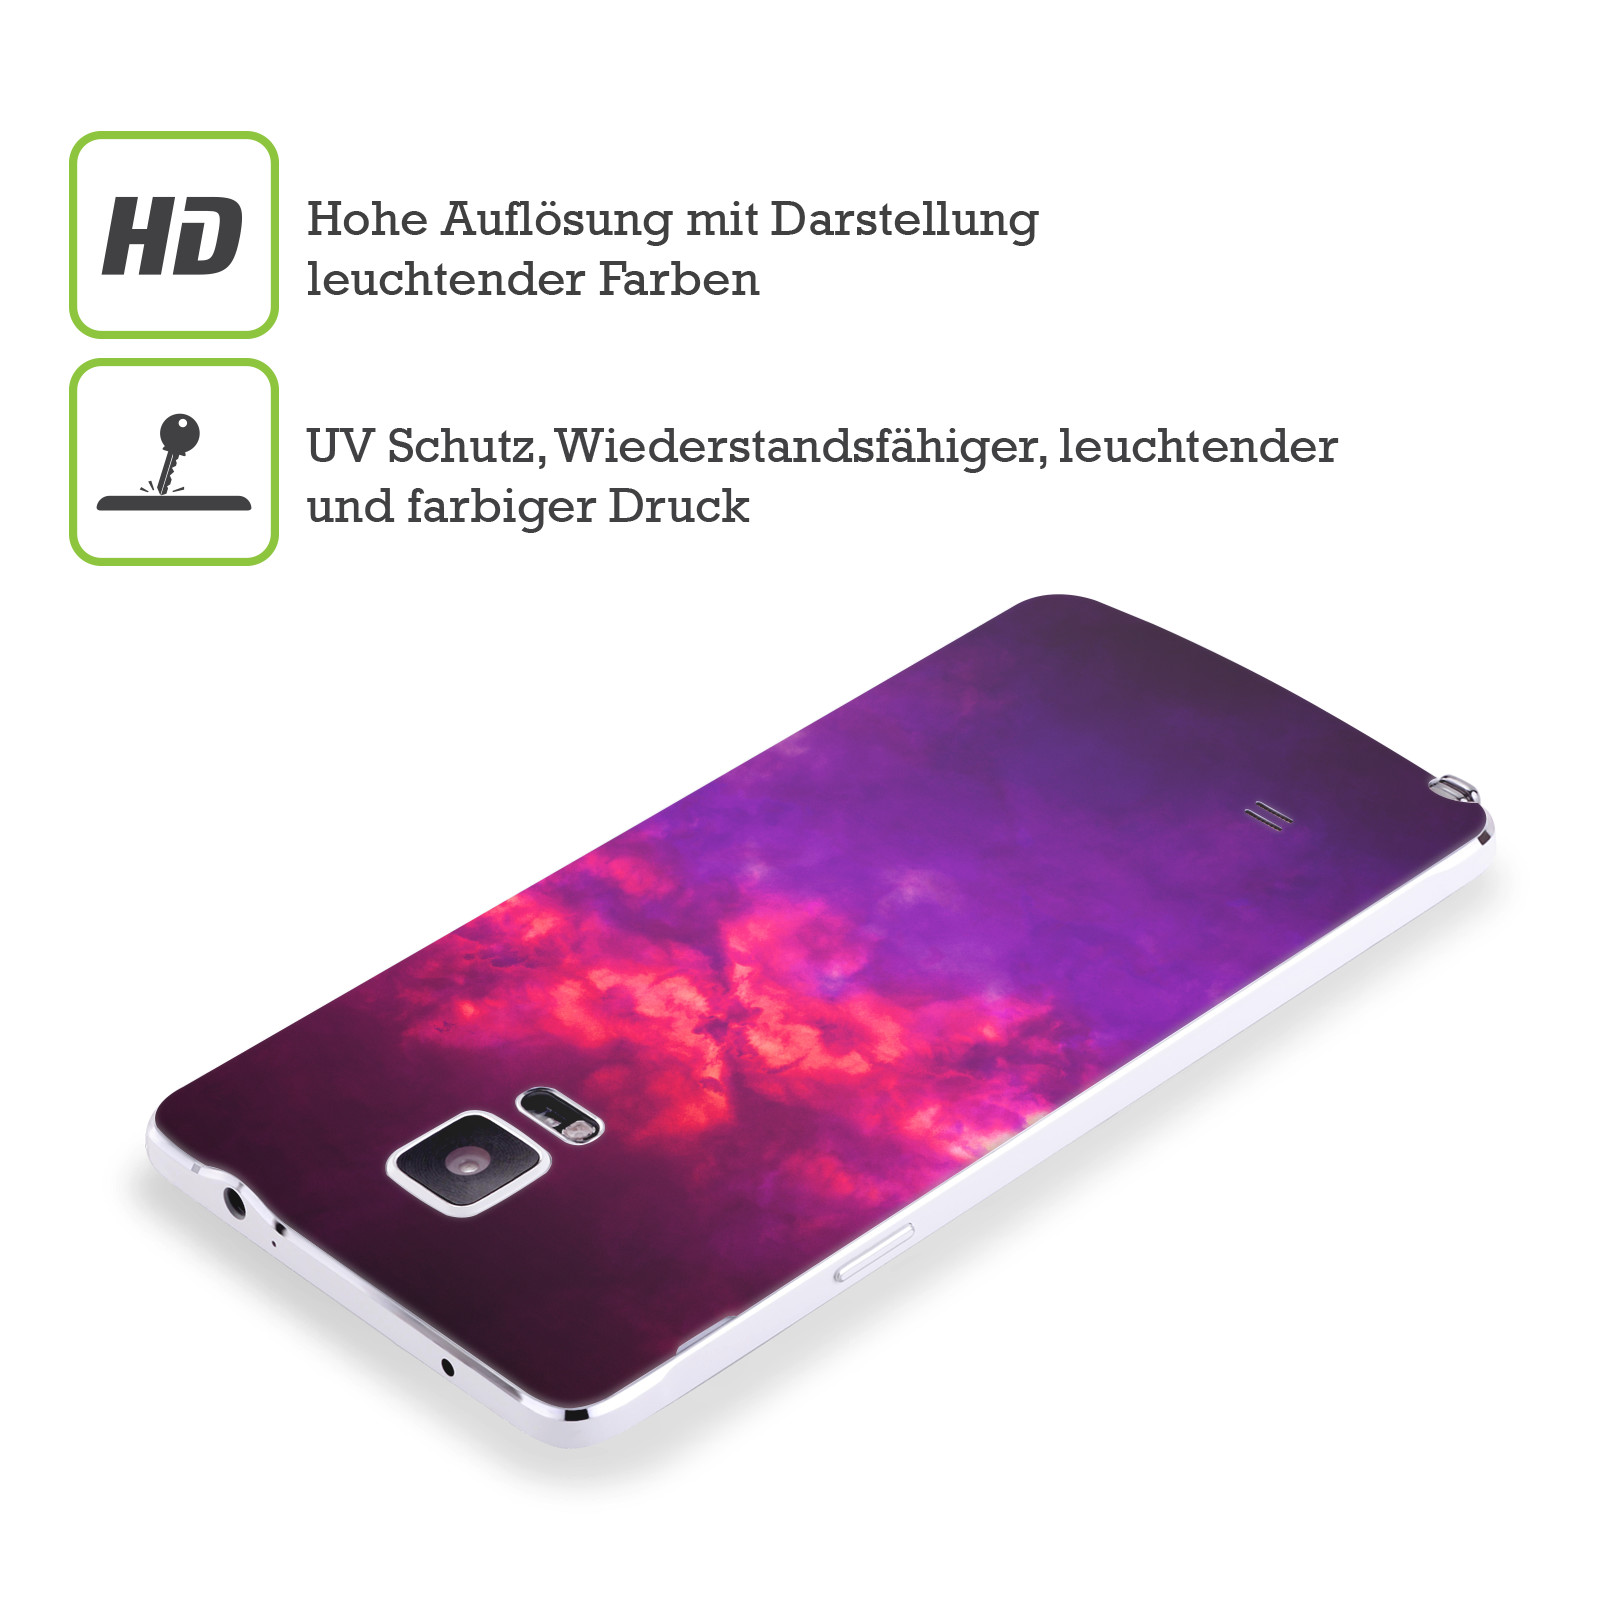 OFFIZIELLE-CALEB-TROY-WOLKEN-BATTERIEABDECKUNG-BACK-COVER-FUR-SAMSUNG-HANDYS-1